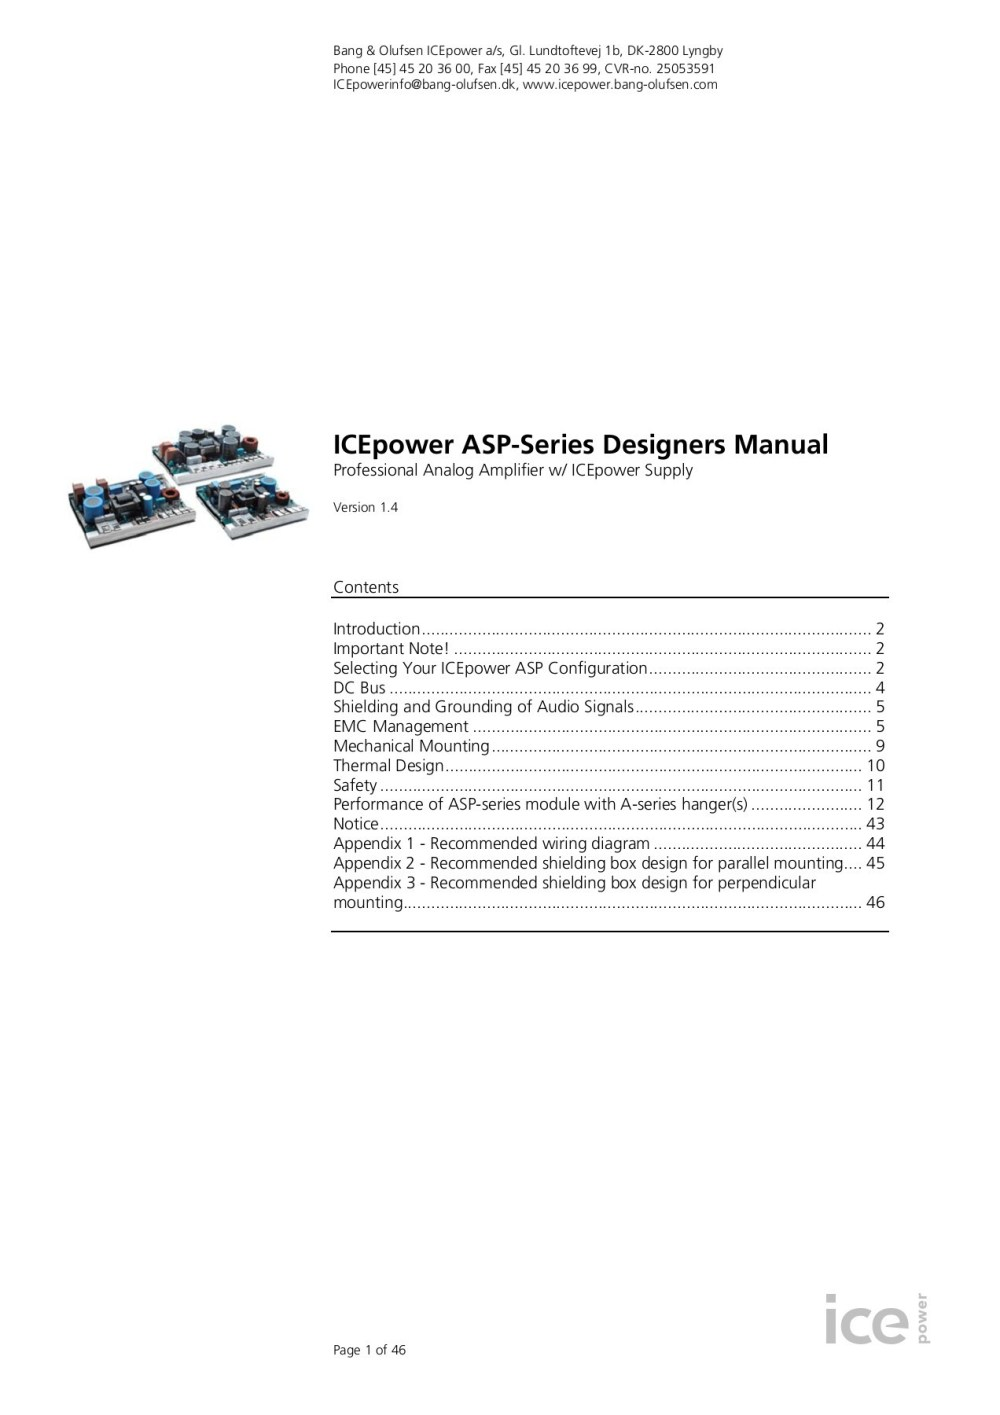 medium resolution of icepower asp series designers manual soundhouse pages 1 46 text version fliphtml5